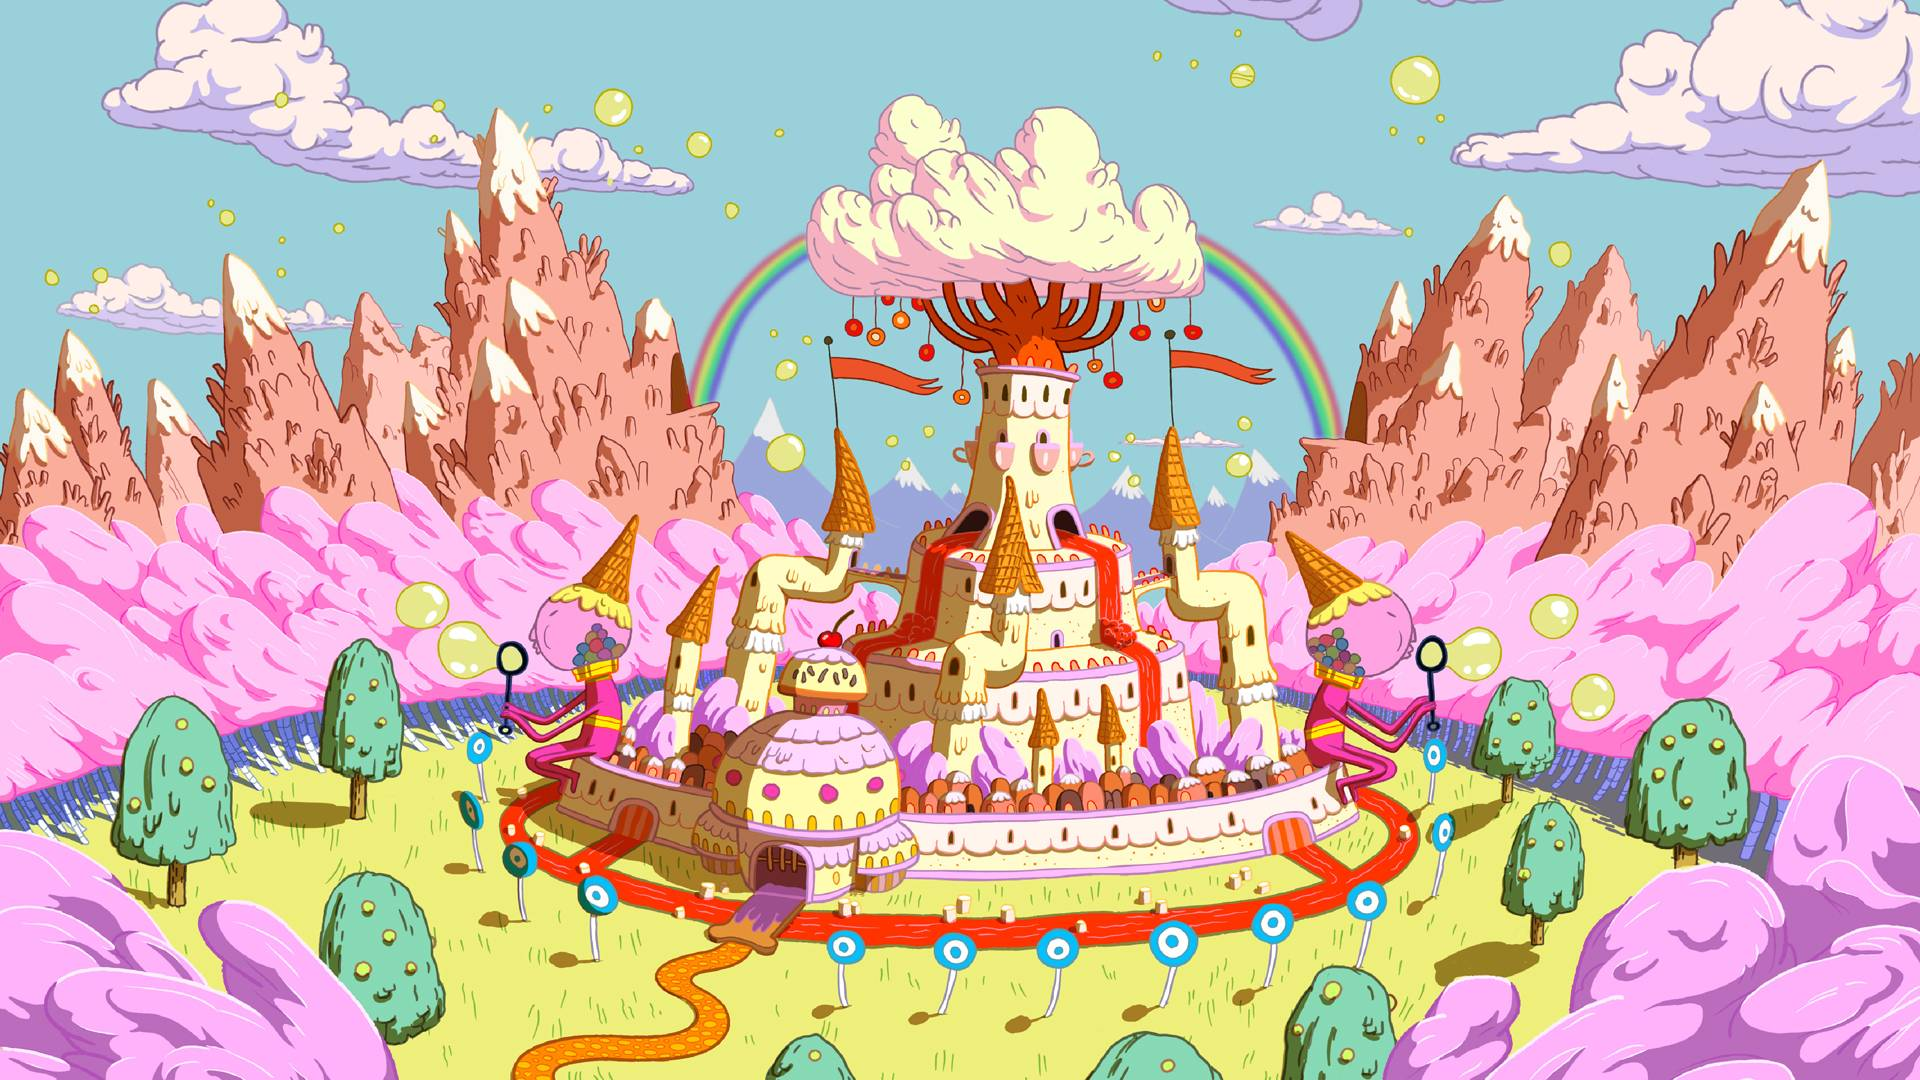 Adventure time desktop backgrounds wallpaper cave adventure time character wallpaper 1607 2157 wallpaper thecheapjerseys Choice Image